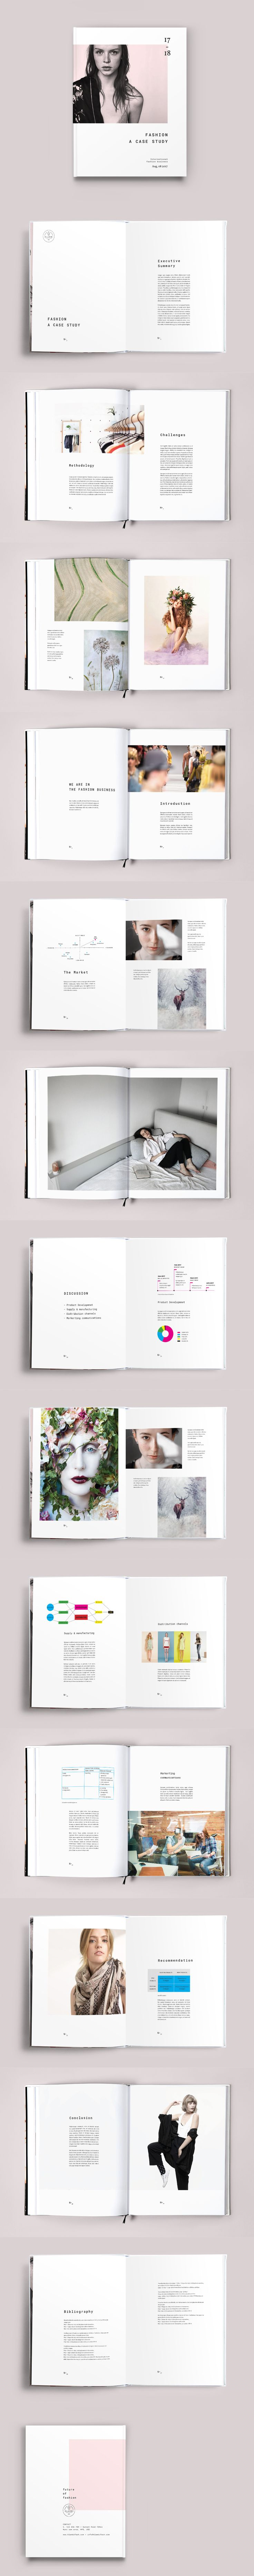 Fashion Case Study Template InDesign INDD - 28 Pages, A4 & US letter size + Bleed